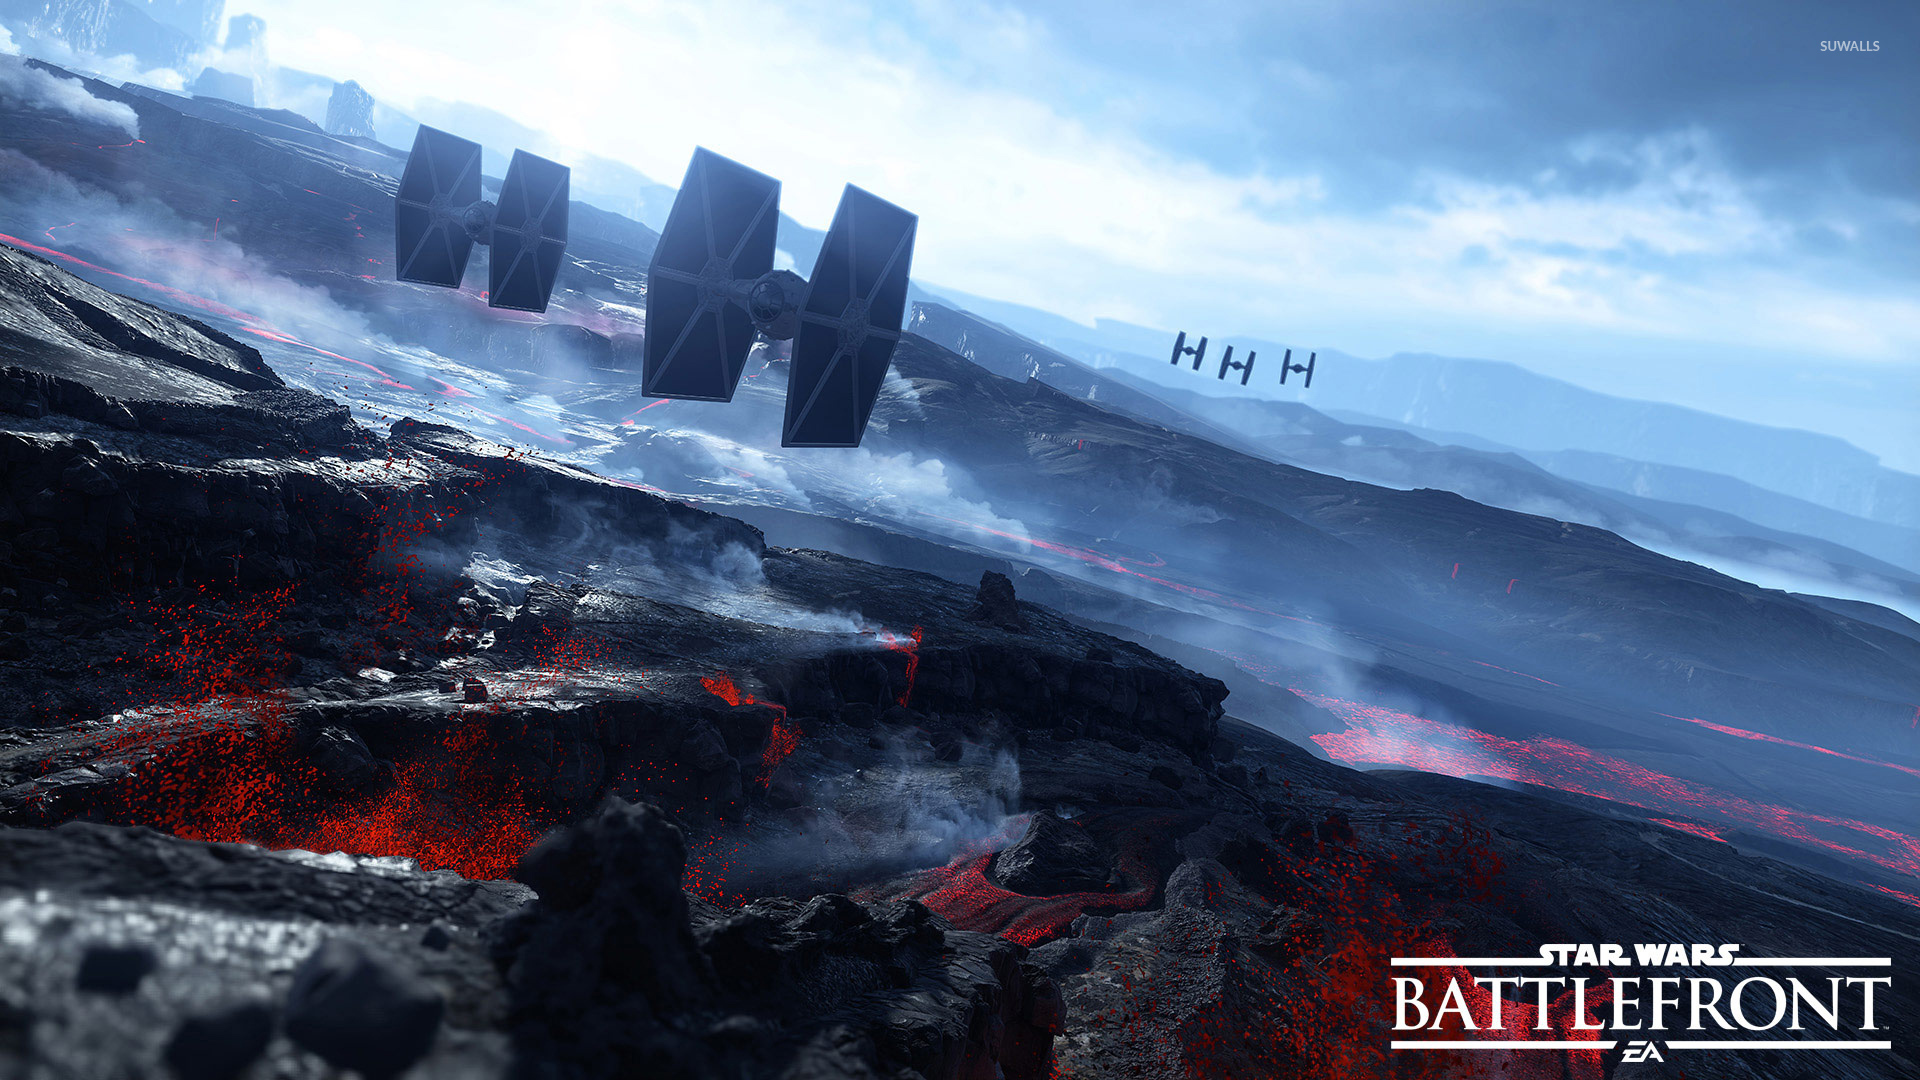 Tie Fighters Over The Volcanoes In Star Wars Battlefront Wallpaper Game Wallpapers 49400